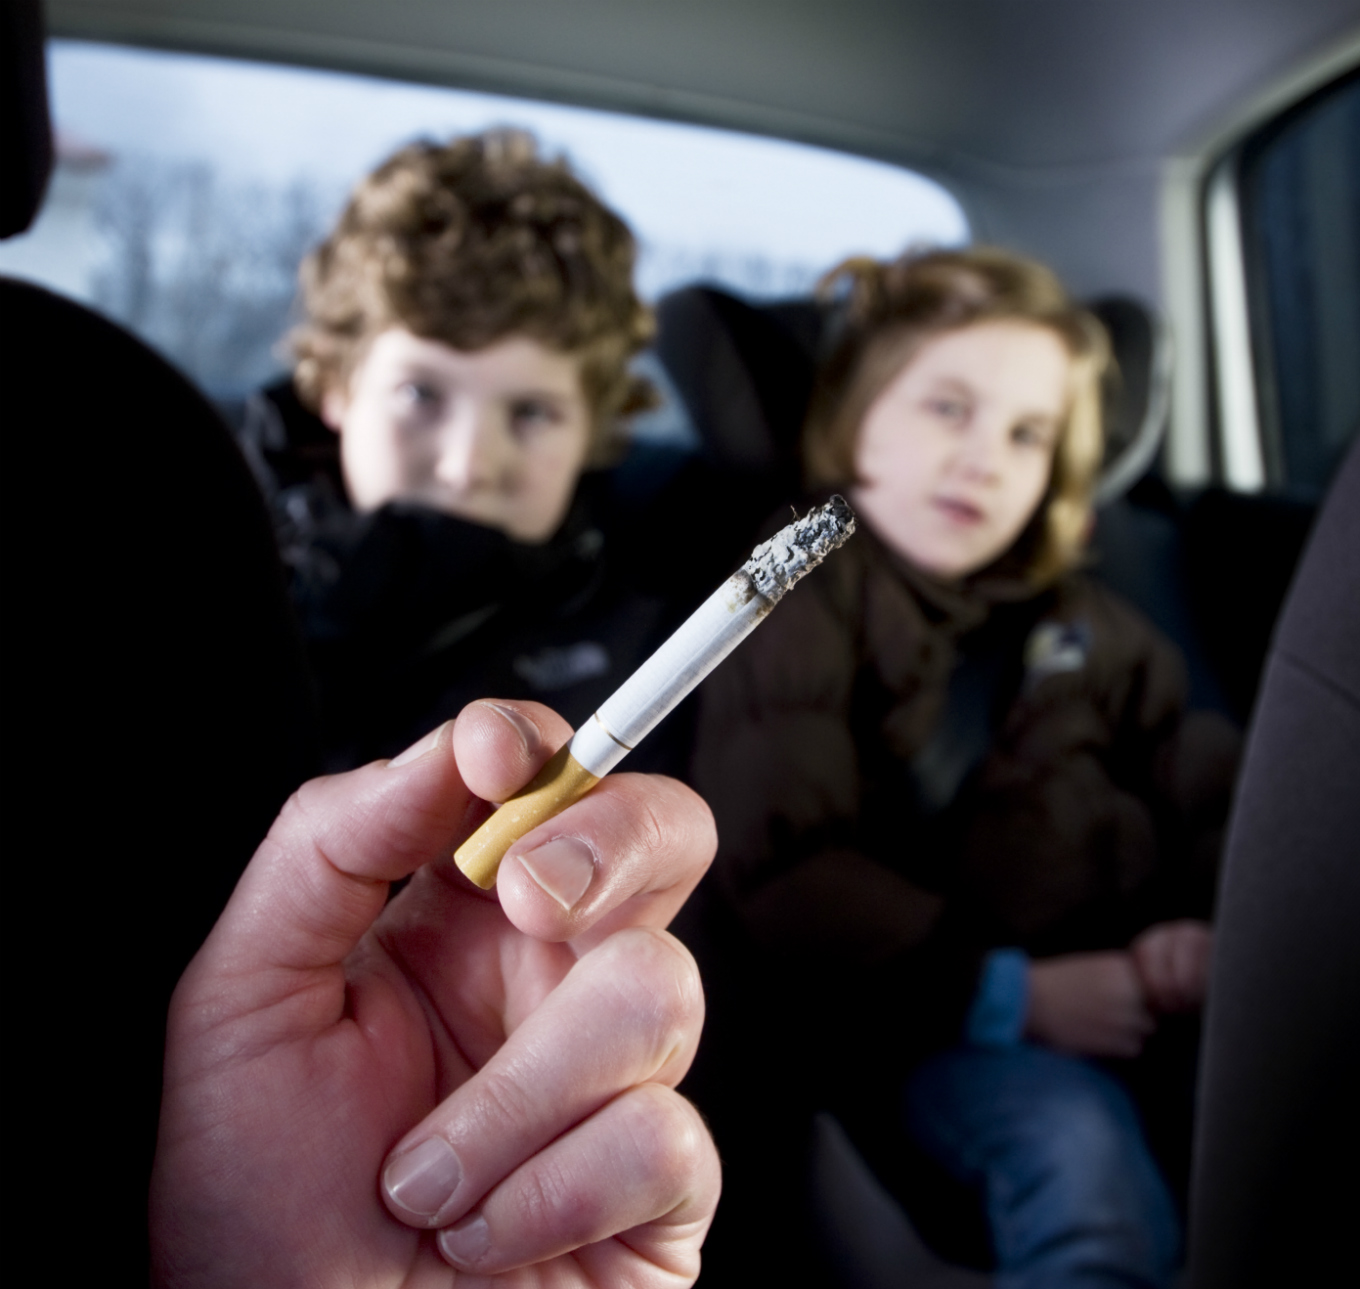 parental smoking and its influence on teenagers Physician emphasis on parental smoking send comments and news tips to news@medscapenet cite this article: teenagers moms' smoking, depression influence.